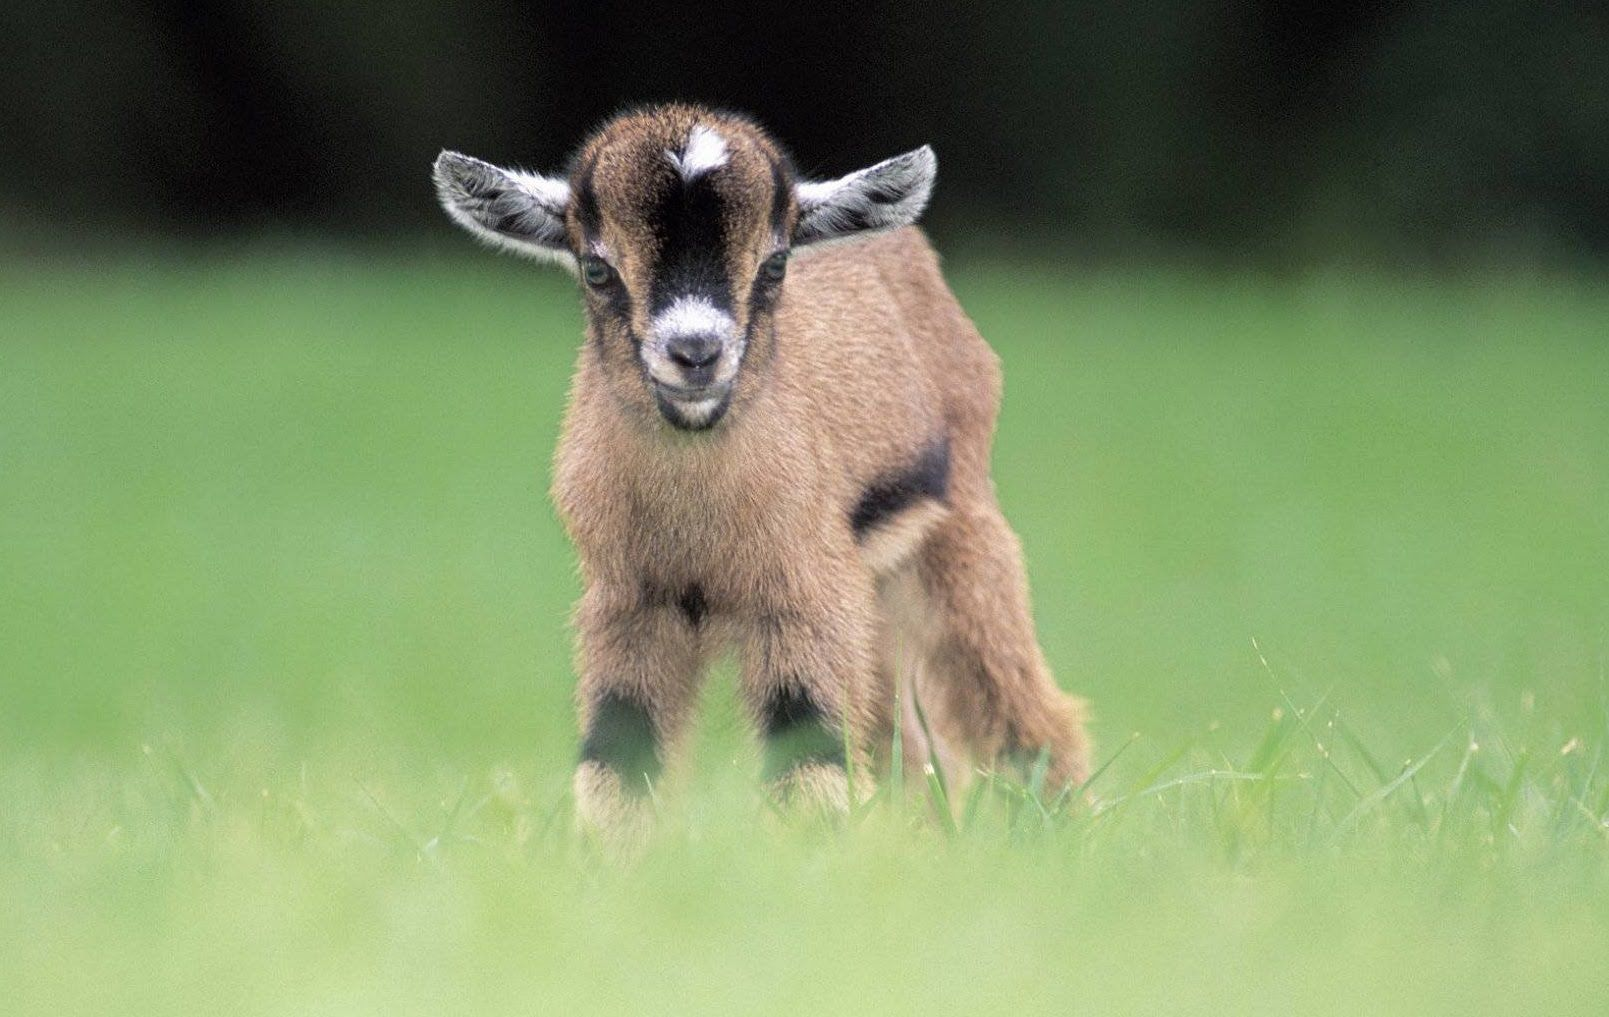 10 Adorable Reasons Why a Pygmy Goat Should Be Your Next Pet